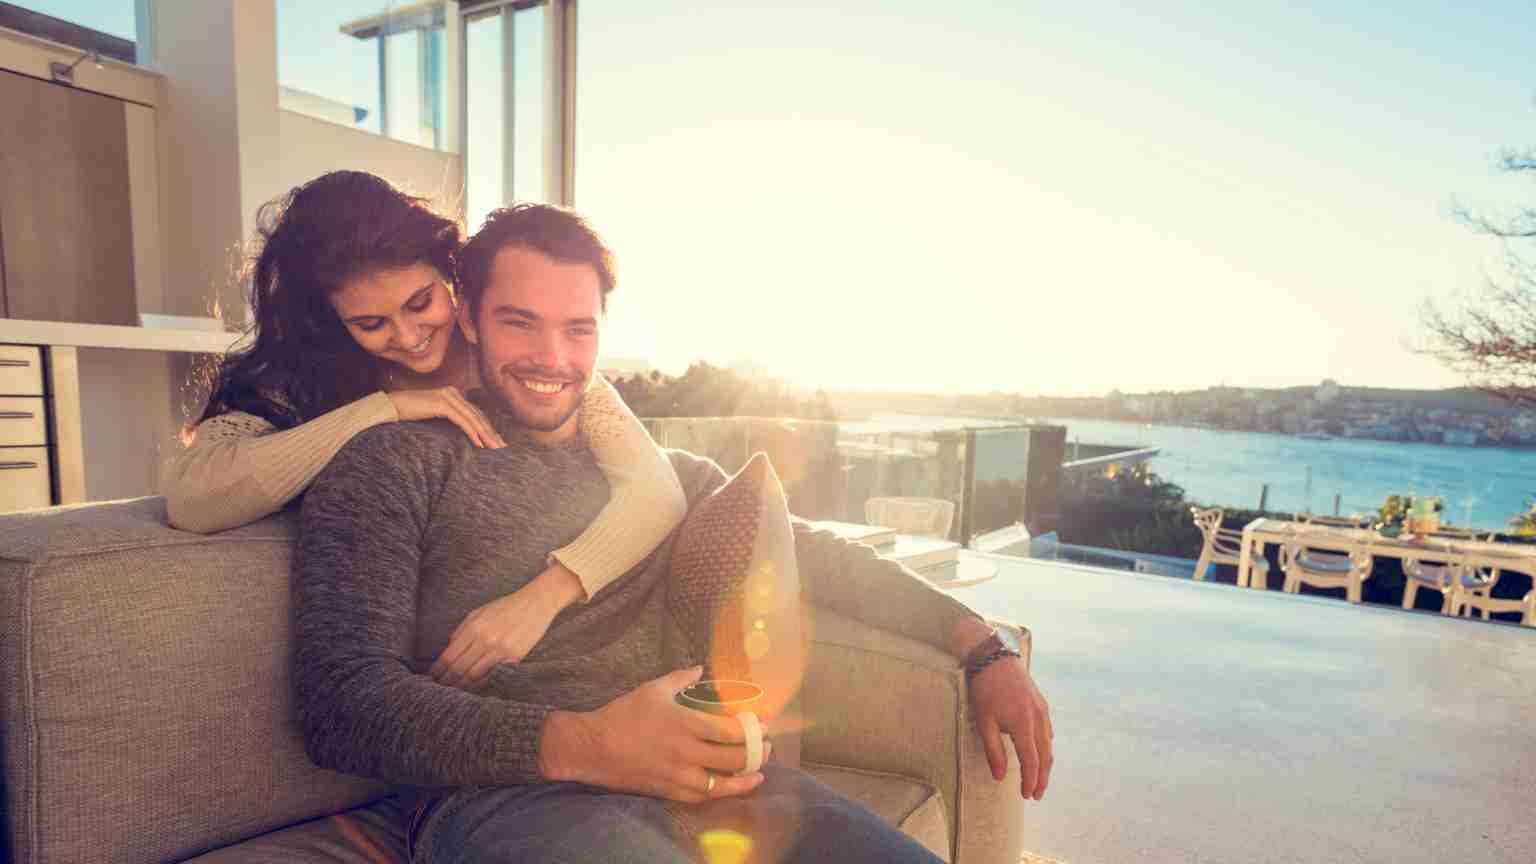 Couple on the sofa in the morning. He is drinking coffee and she is embracing him. They are happy and smiling. There is a view of the water in the background of this luxury home. Back lit with lens flare. (Couple on the sofa in the morning. He is drin